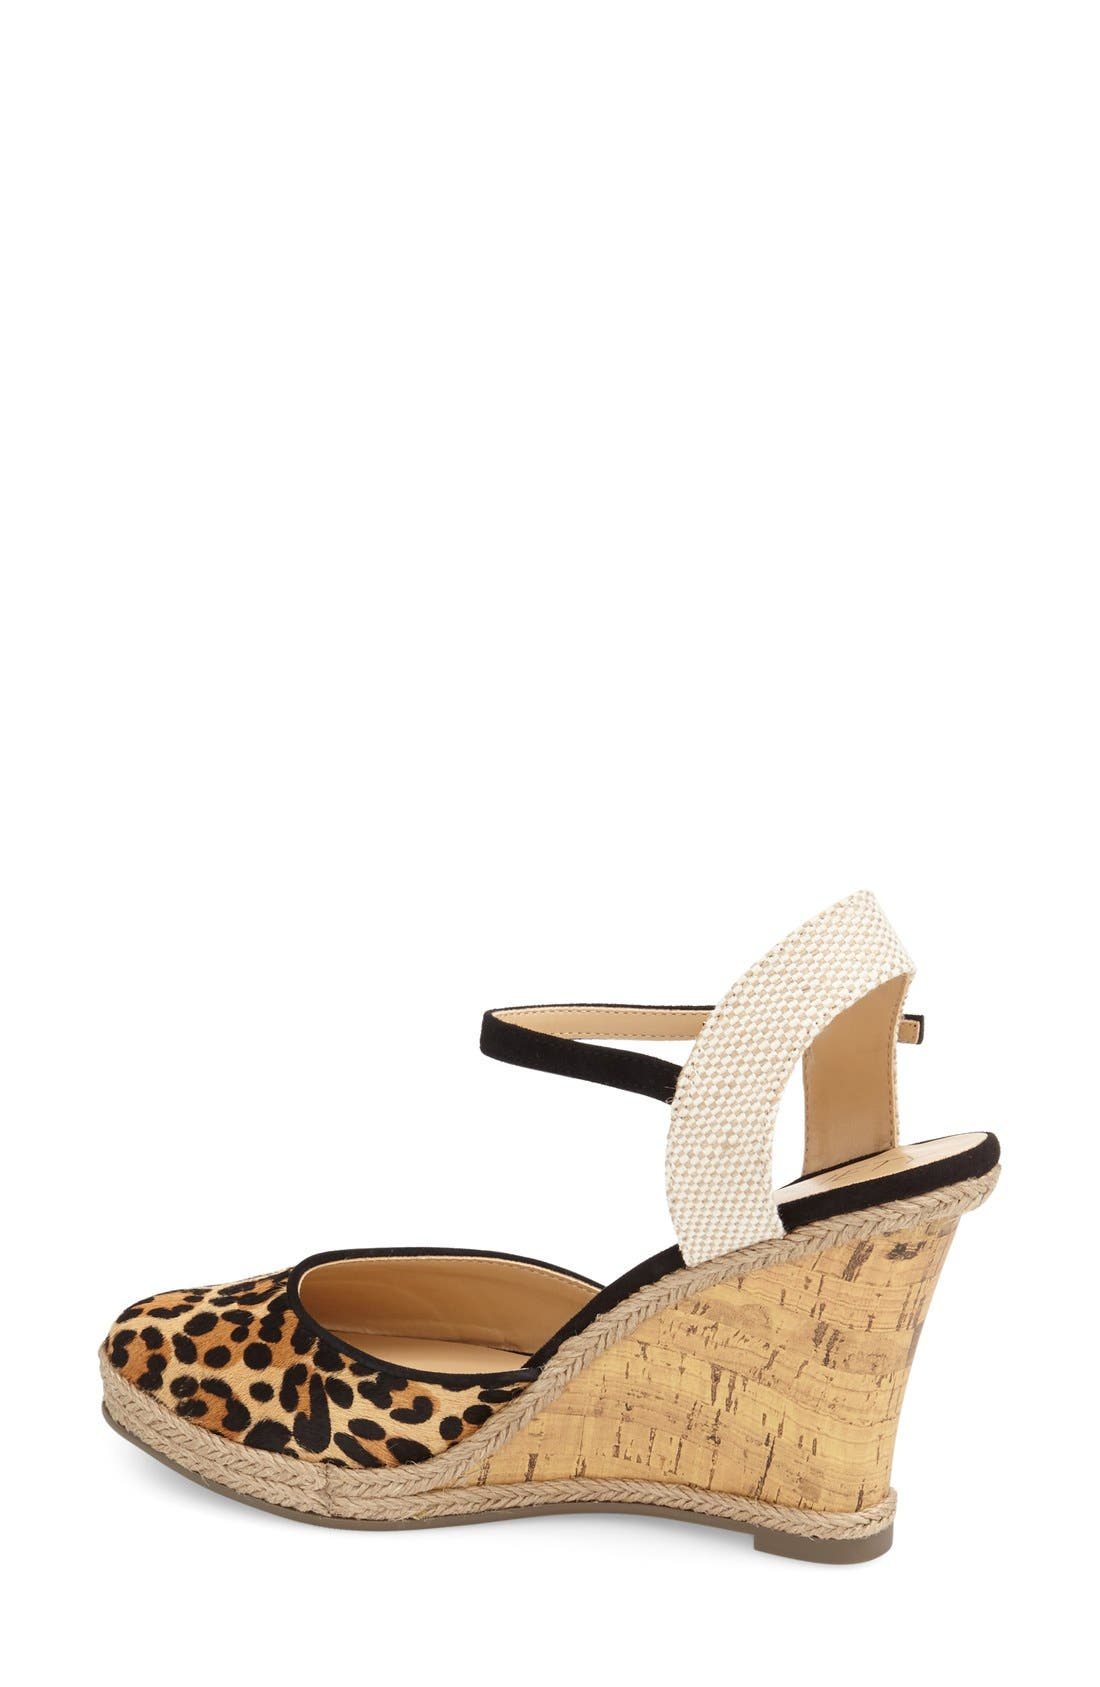 Alternate Image 2  - Sole Society 'Lucy' Wedge Sandal (Women)